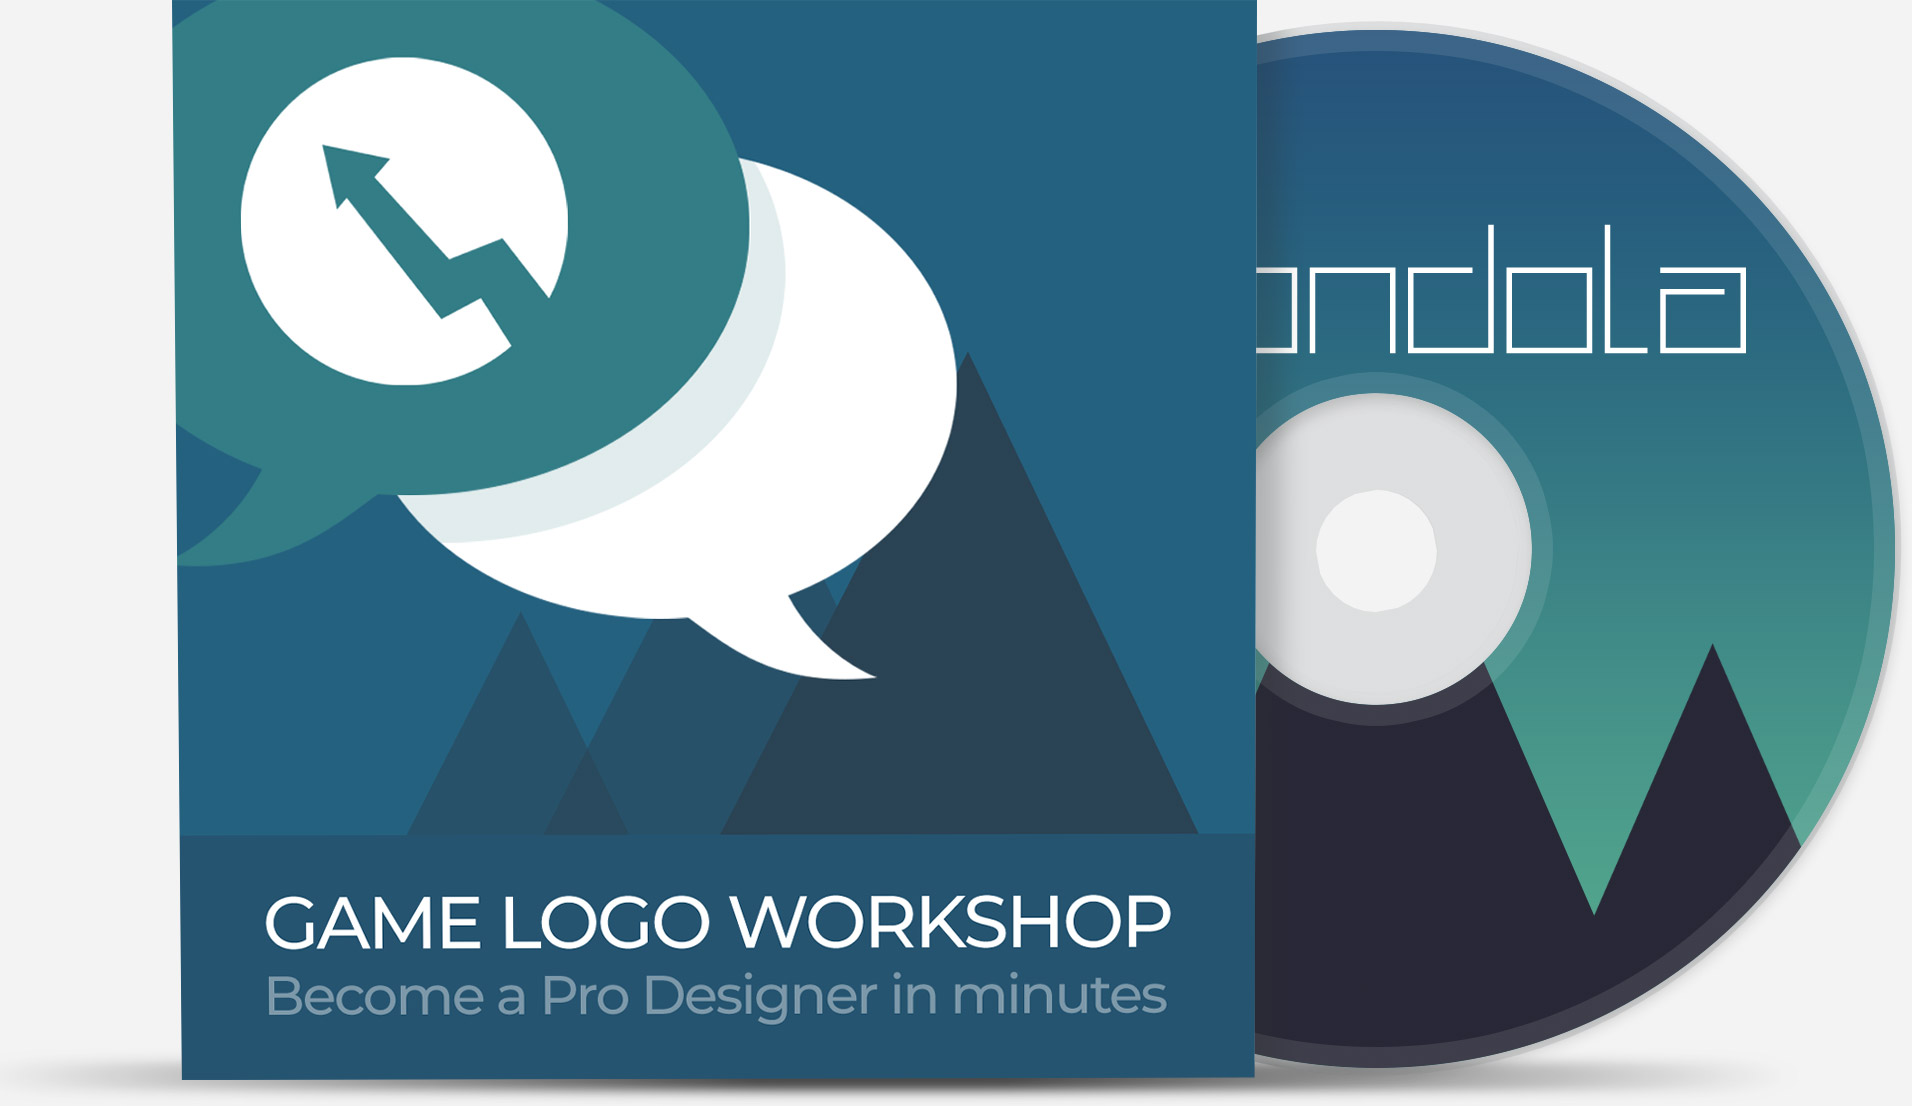 Design a Game Logo Workshop